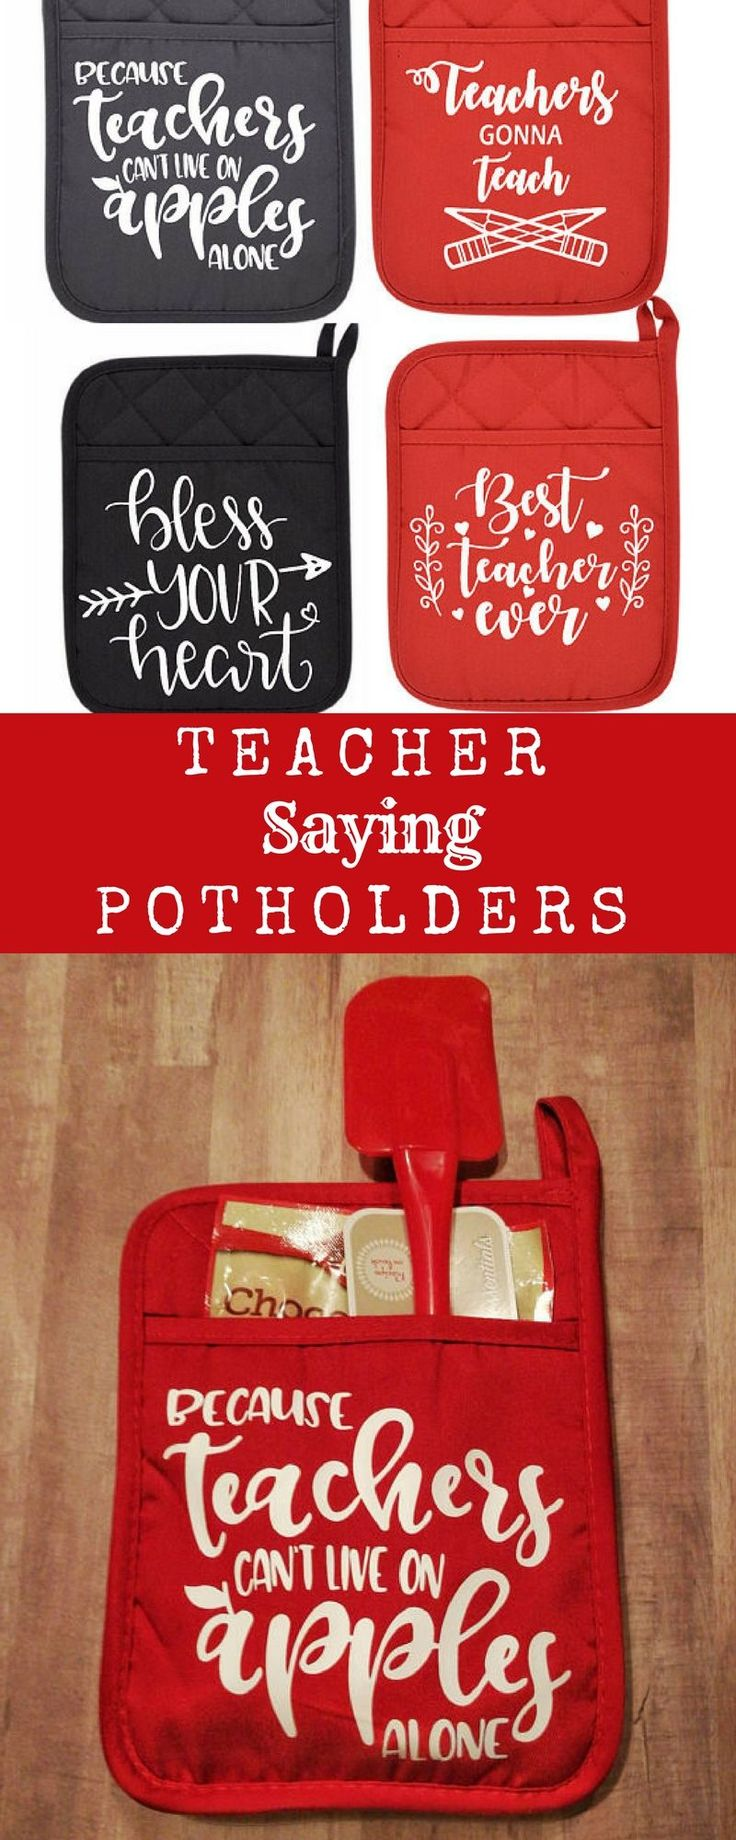 Teacher Saying Pot Holders WITH MIX and SPATULA- teacher gift-teacher pot holders with saying-teacher valentines gift, class valentine #ad #teacherappreciationgifts